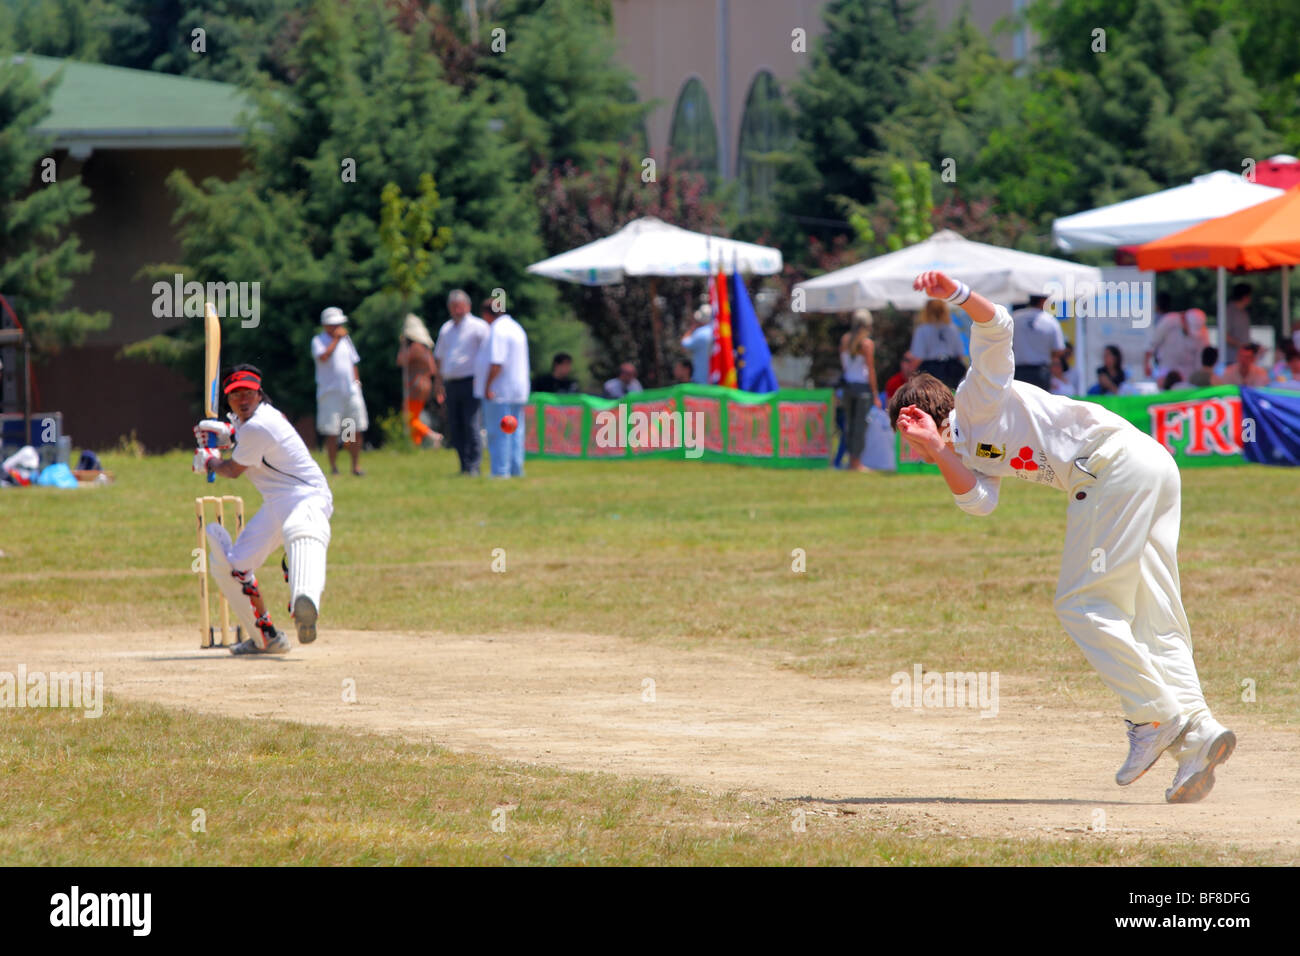 first cricket game in Skopje, Macedonia. Summer 2009 - Stock Image